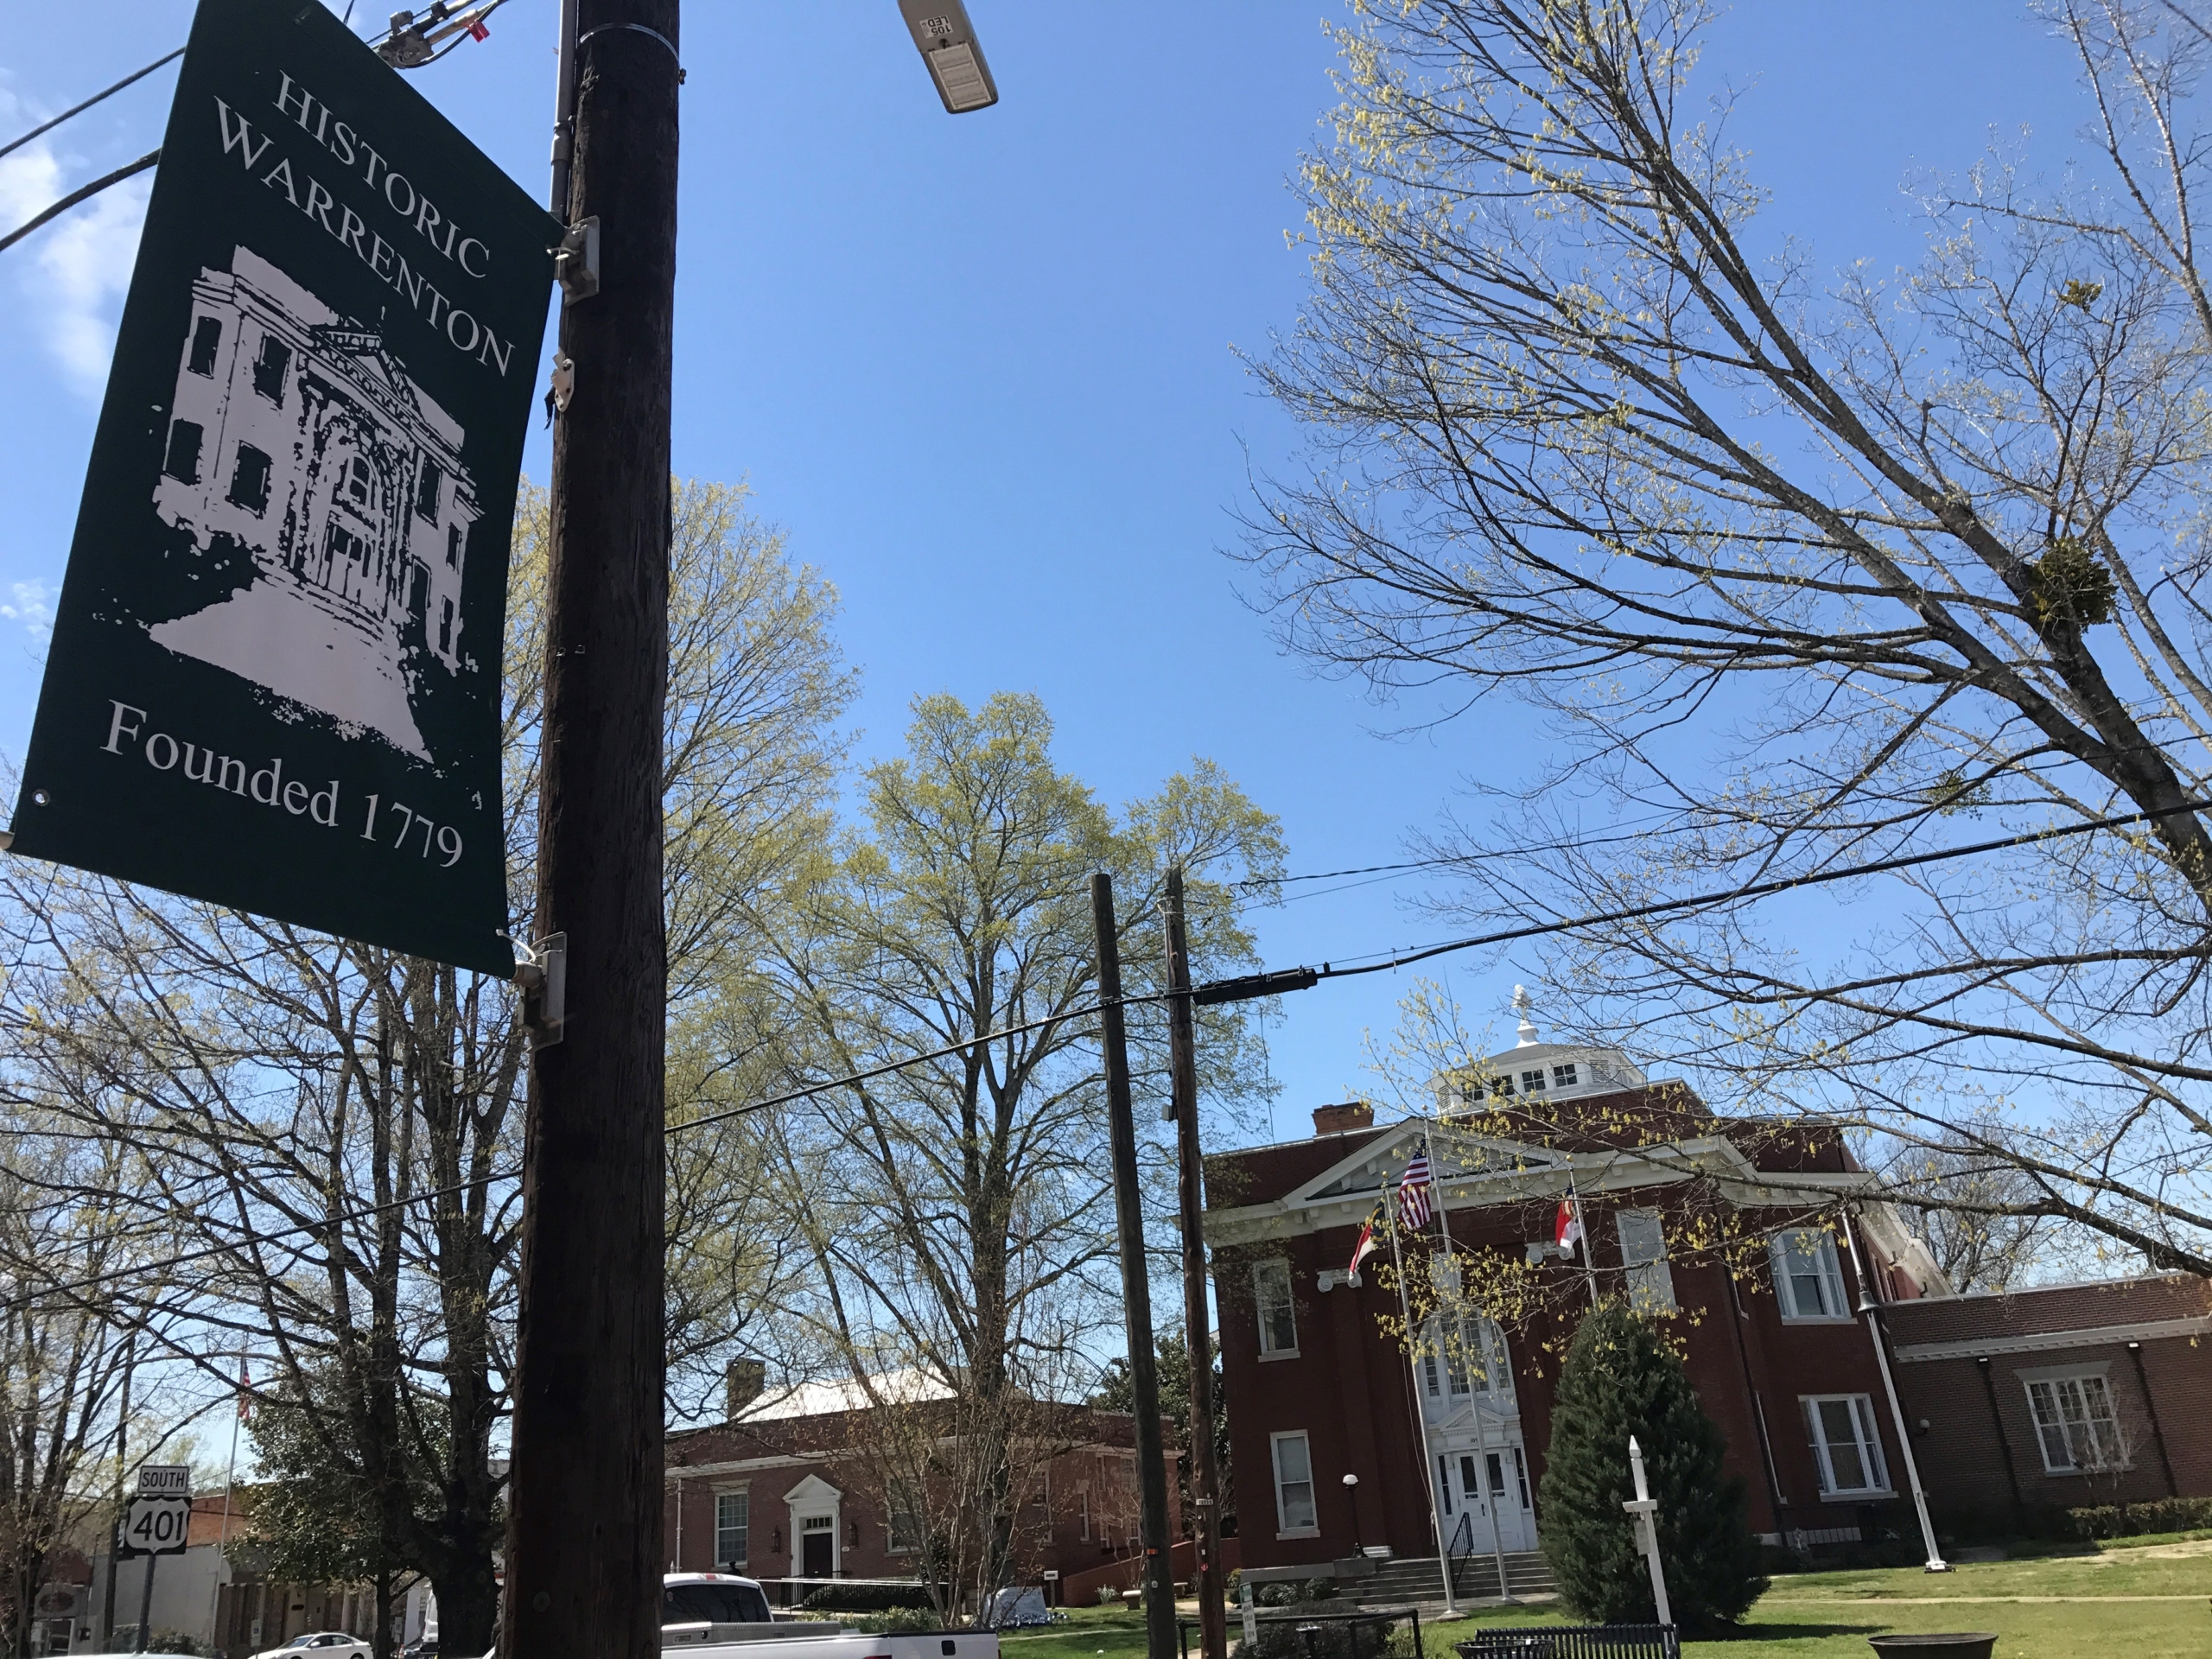 A lightpole with a banner containing the Historical Warrenton logo. The banner states the town was founded in 1779.